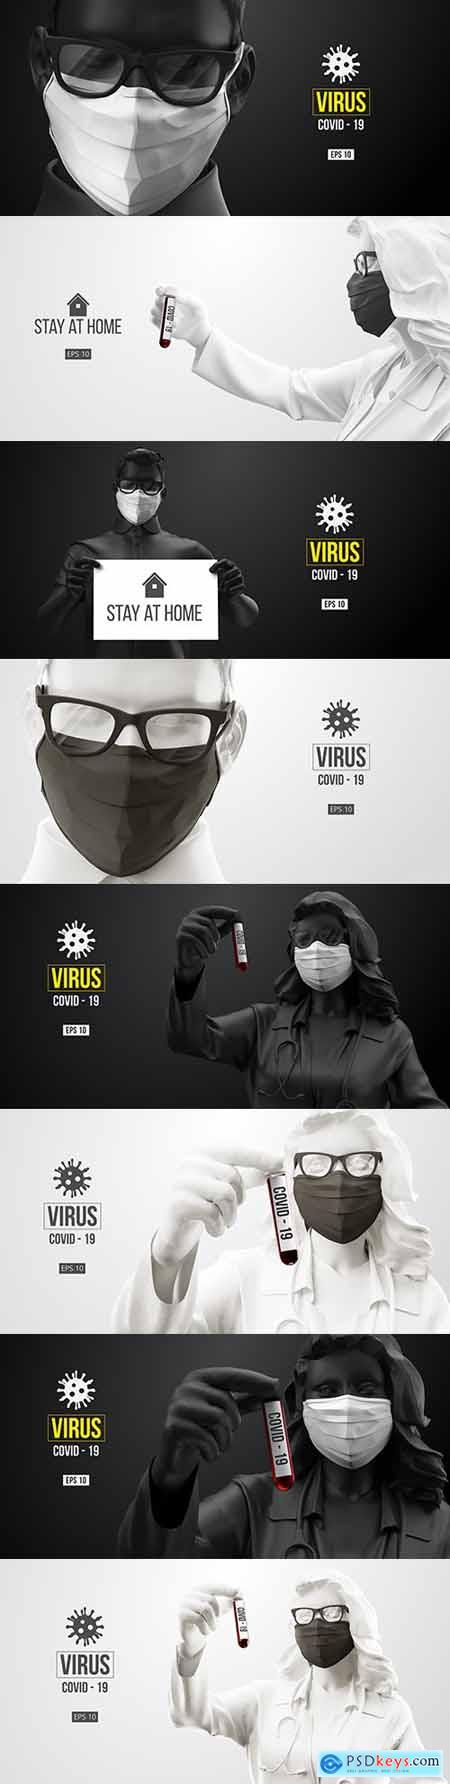 Coronavirus people in medical mask and virus protection